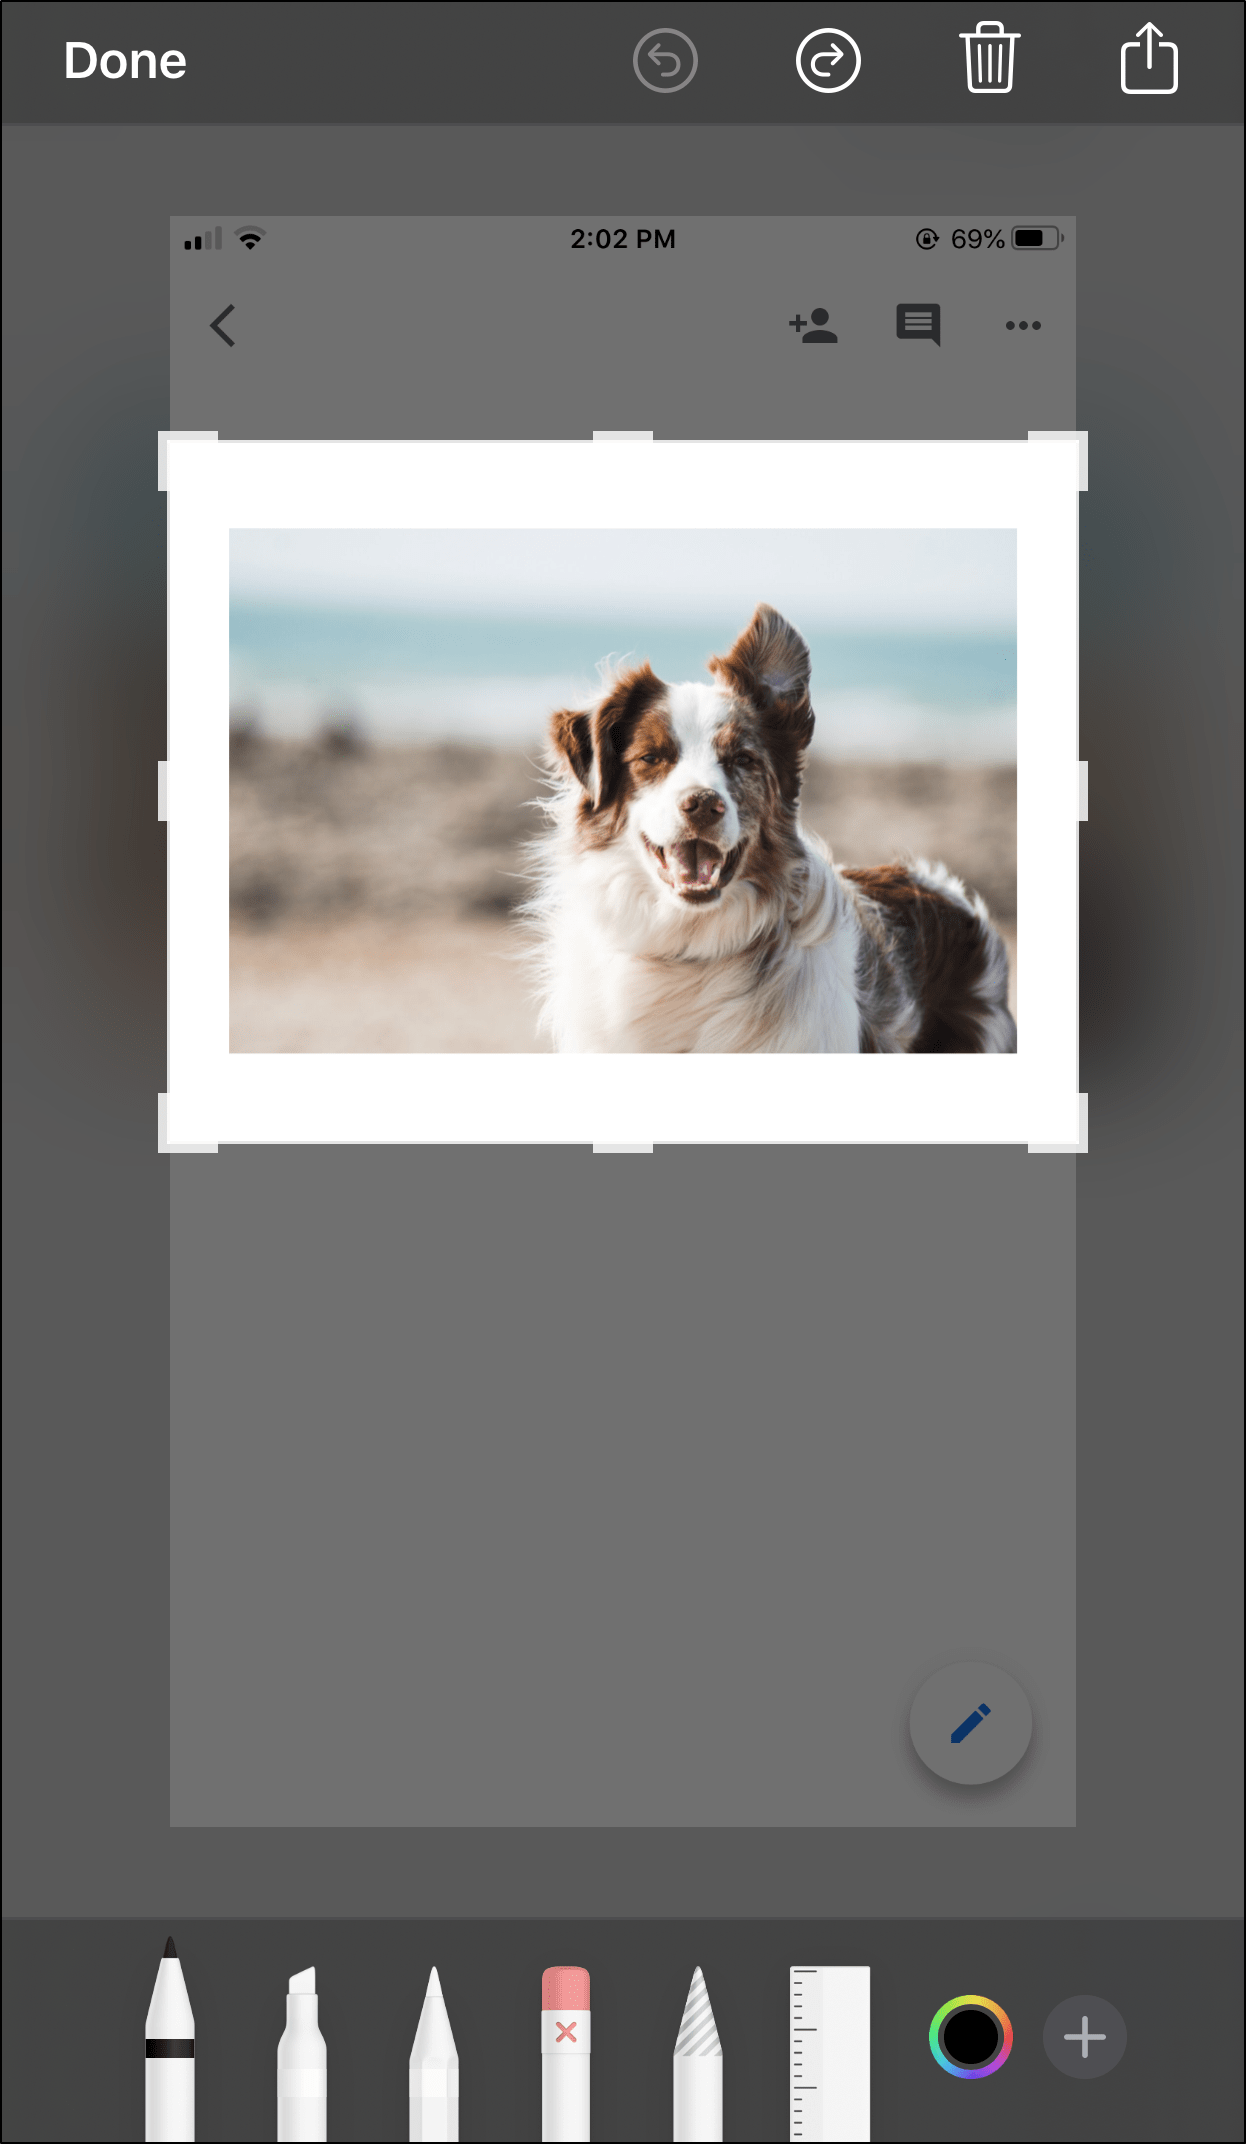 Screenshot and crop the image to save pictures from Google Docs on iPhone and Android